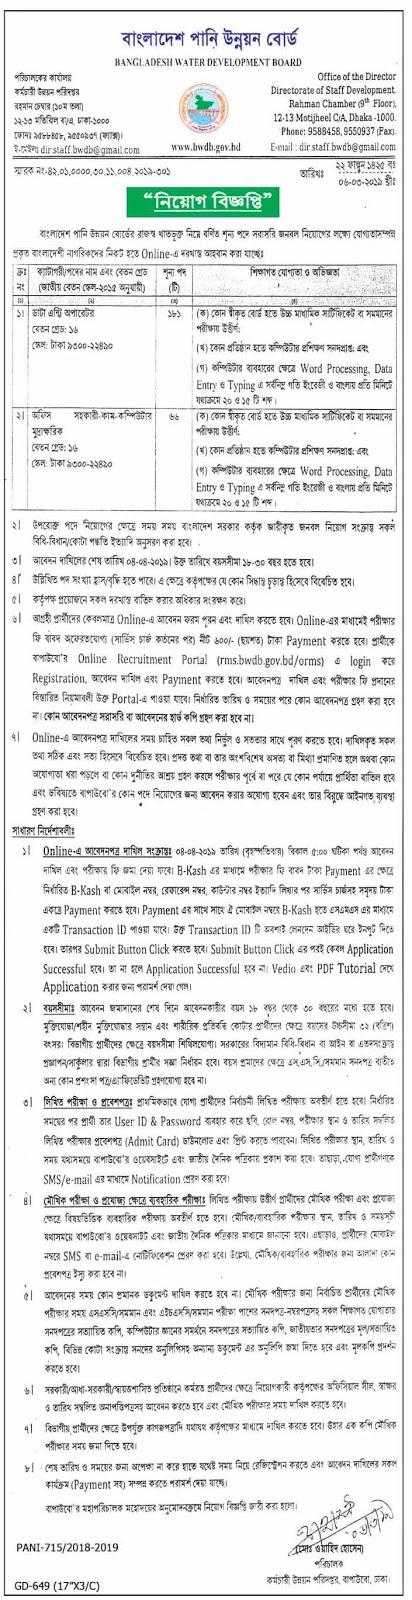 Bangladesh Water Development Board (BWDB) Job Circular 2019